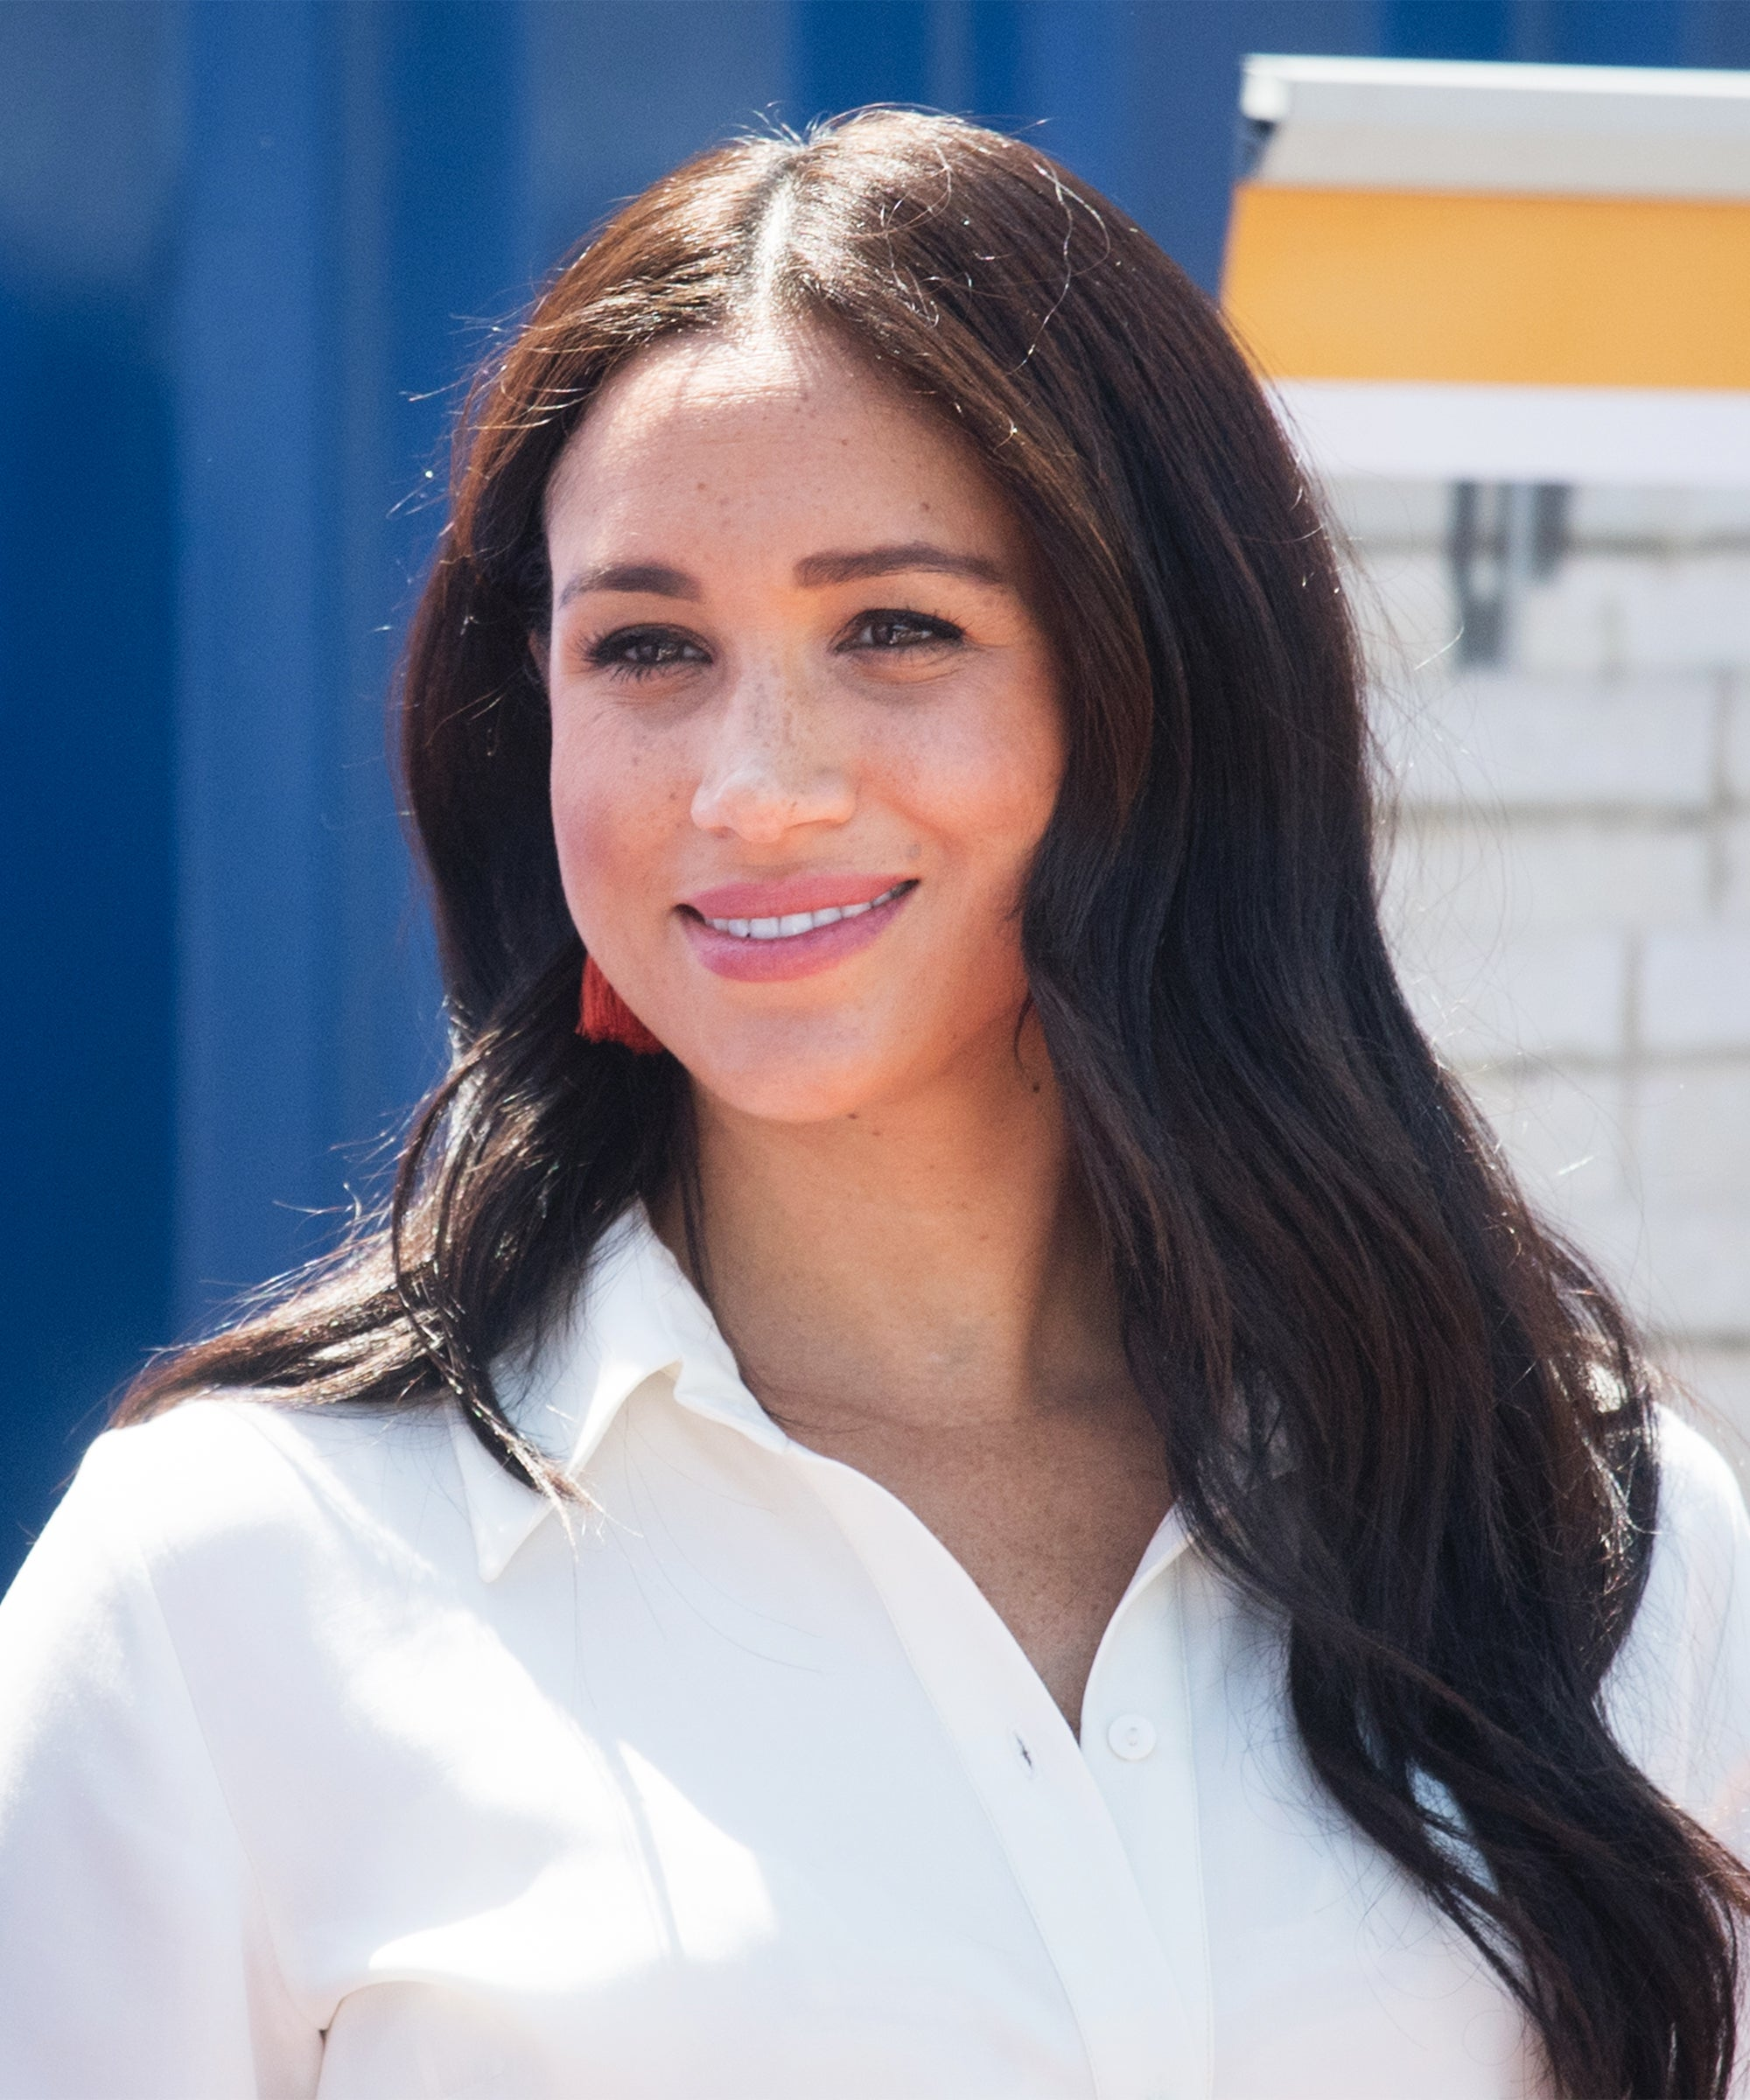 """Meghan Markle's Lawsuit Reveals """"Anguish"""" After Publishing Of Letter To Father"""